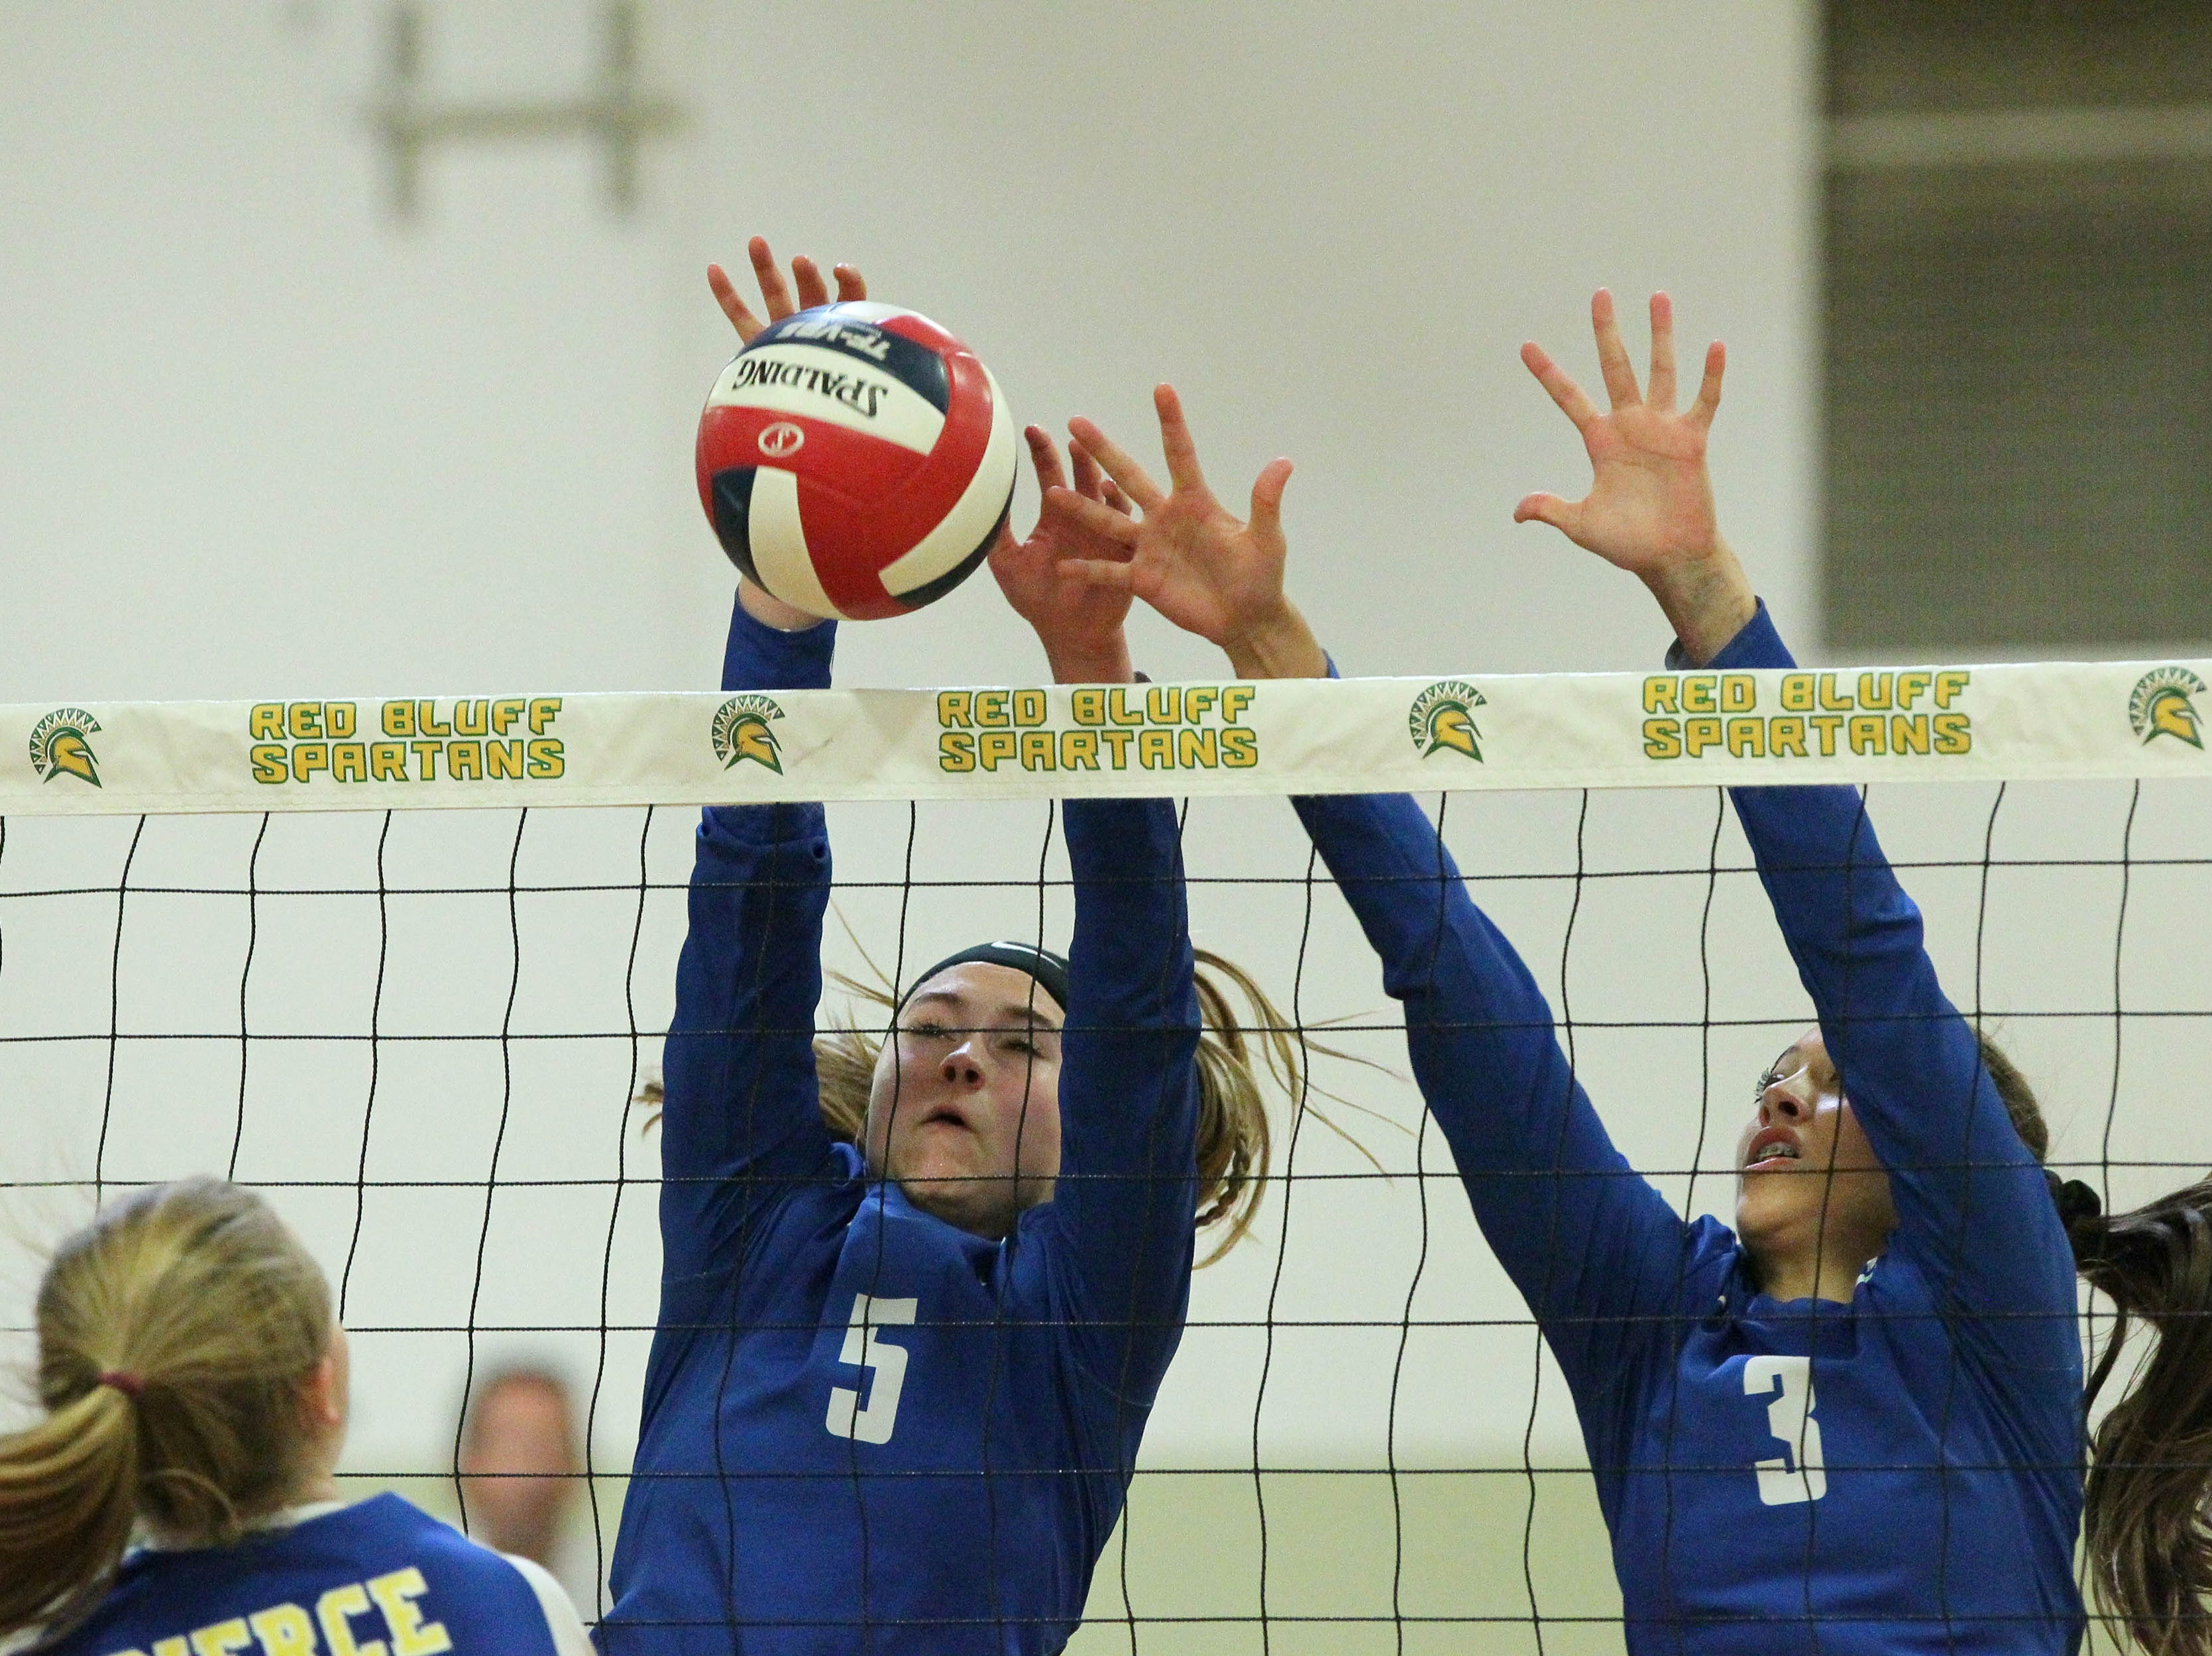 U-Prep's Madi Friebel (5) and Kaleia Mizuta (3) attempt block a shot by Pierce in the Division IV Northern Section volleyball championship on Saturday, Nov. 3. Pierce won the match in three sets over U-Prep, 25-23, 25-21, 25-22.